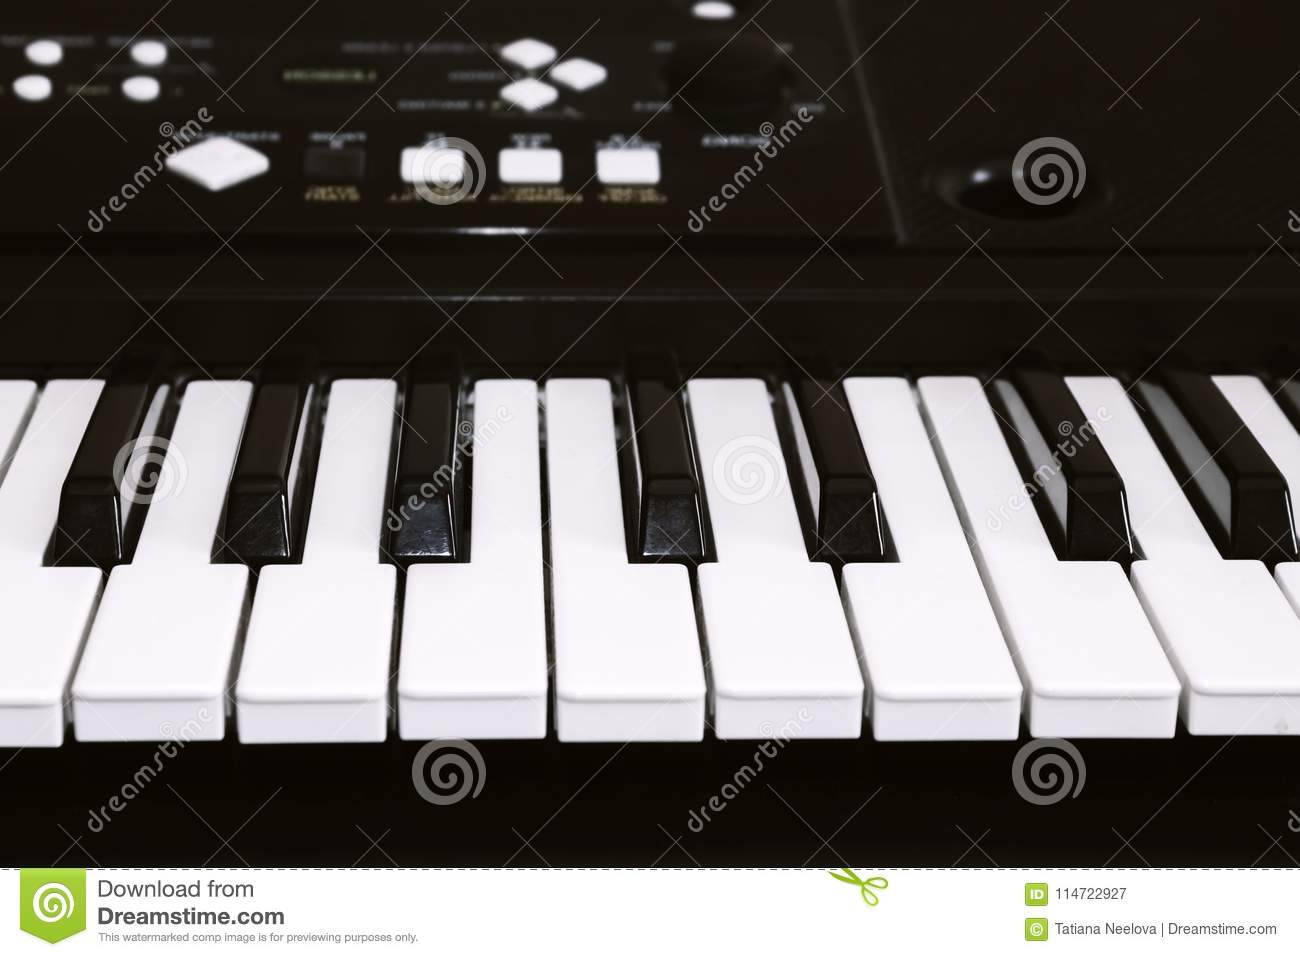 Keyboard Or Piano For Digital Music Recording, A Music Instrument